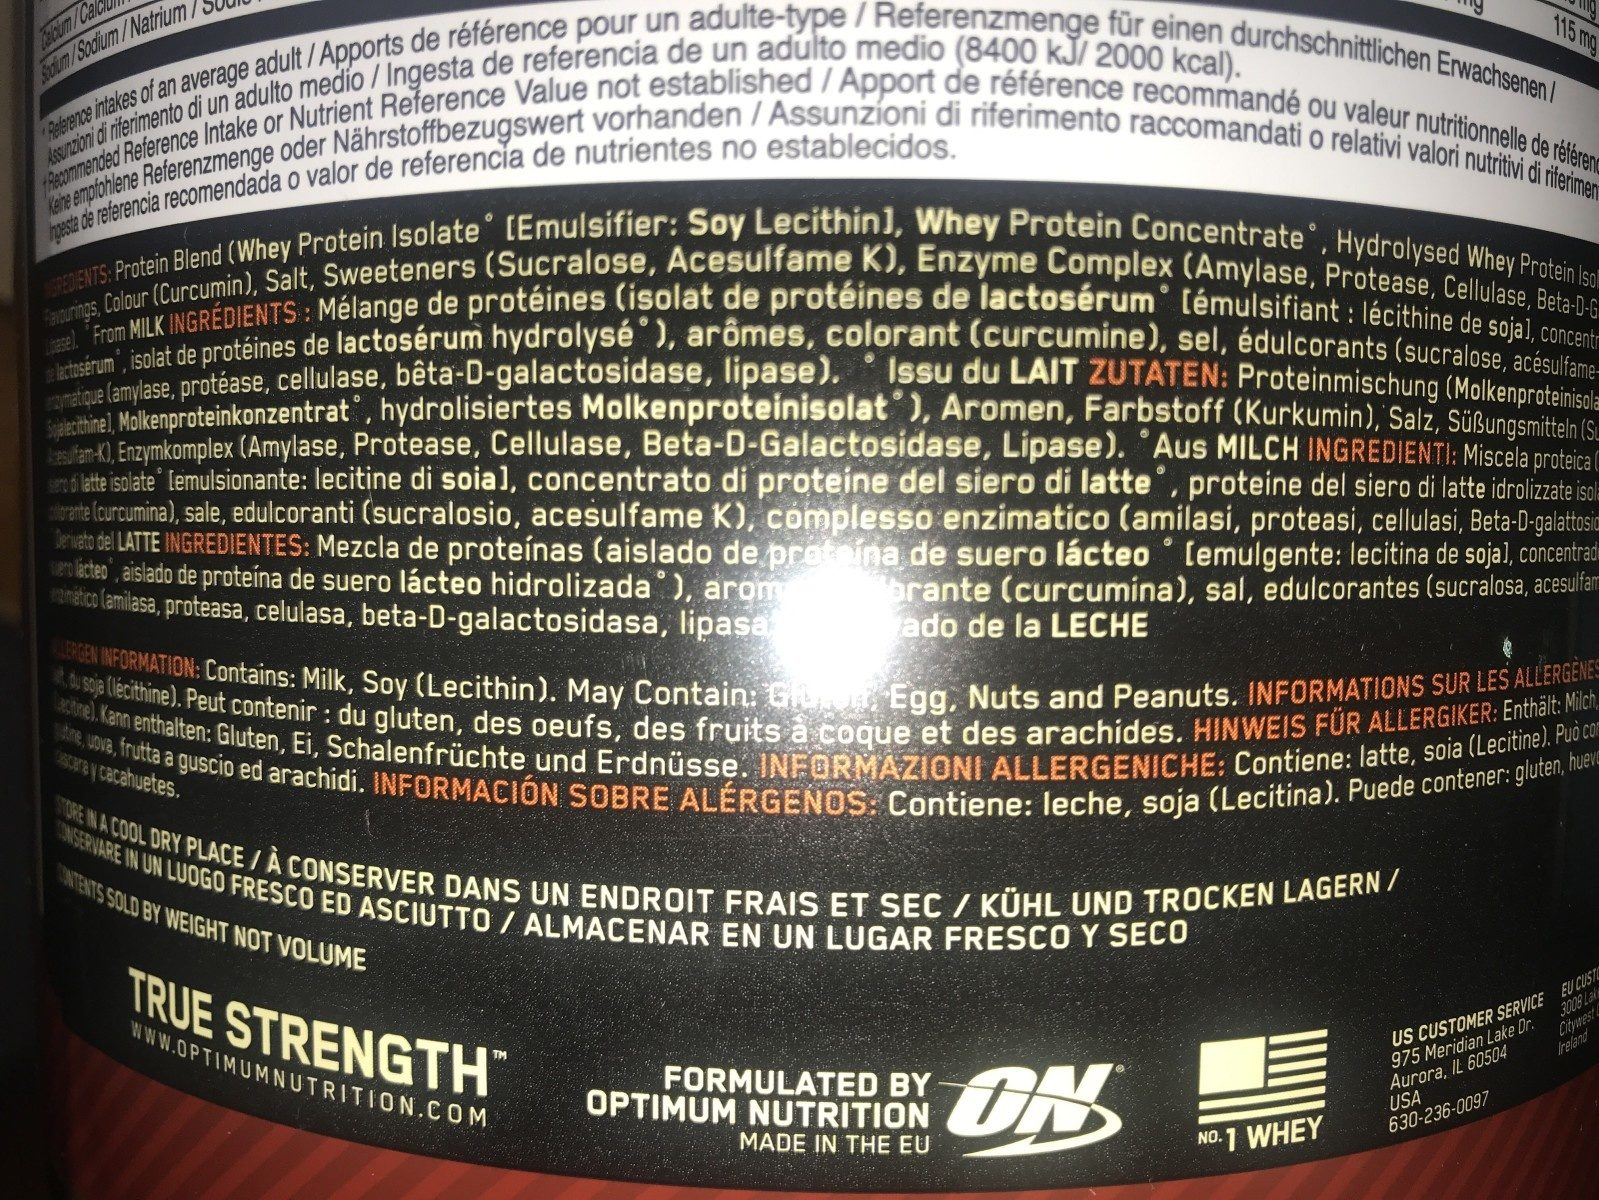 100% Whey Gold Standard 2 LBS (908G) - Ingredients